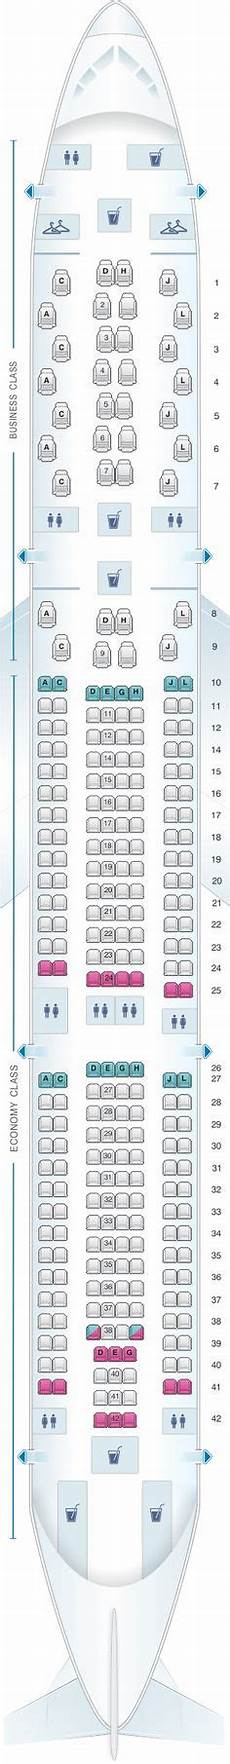 Iberia 2622 Seating Chart 10 Best Iberia Seat Maps Images Map Airplane Seats